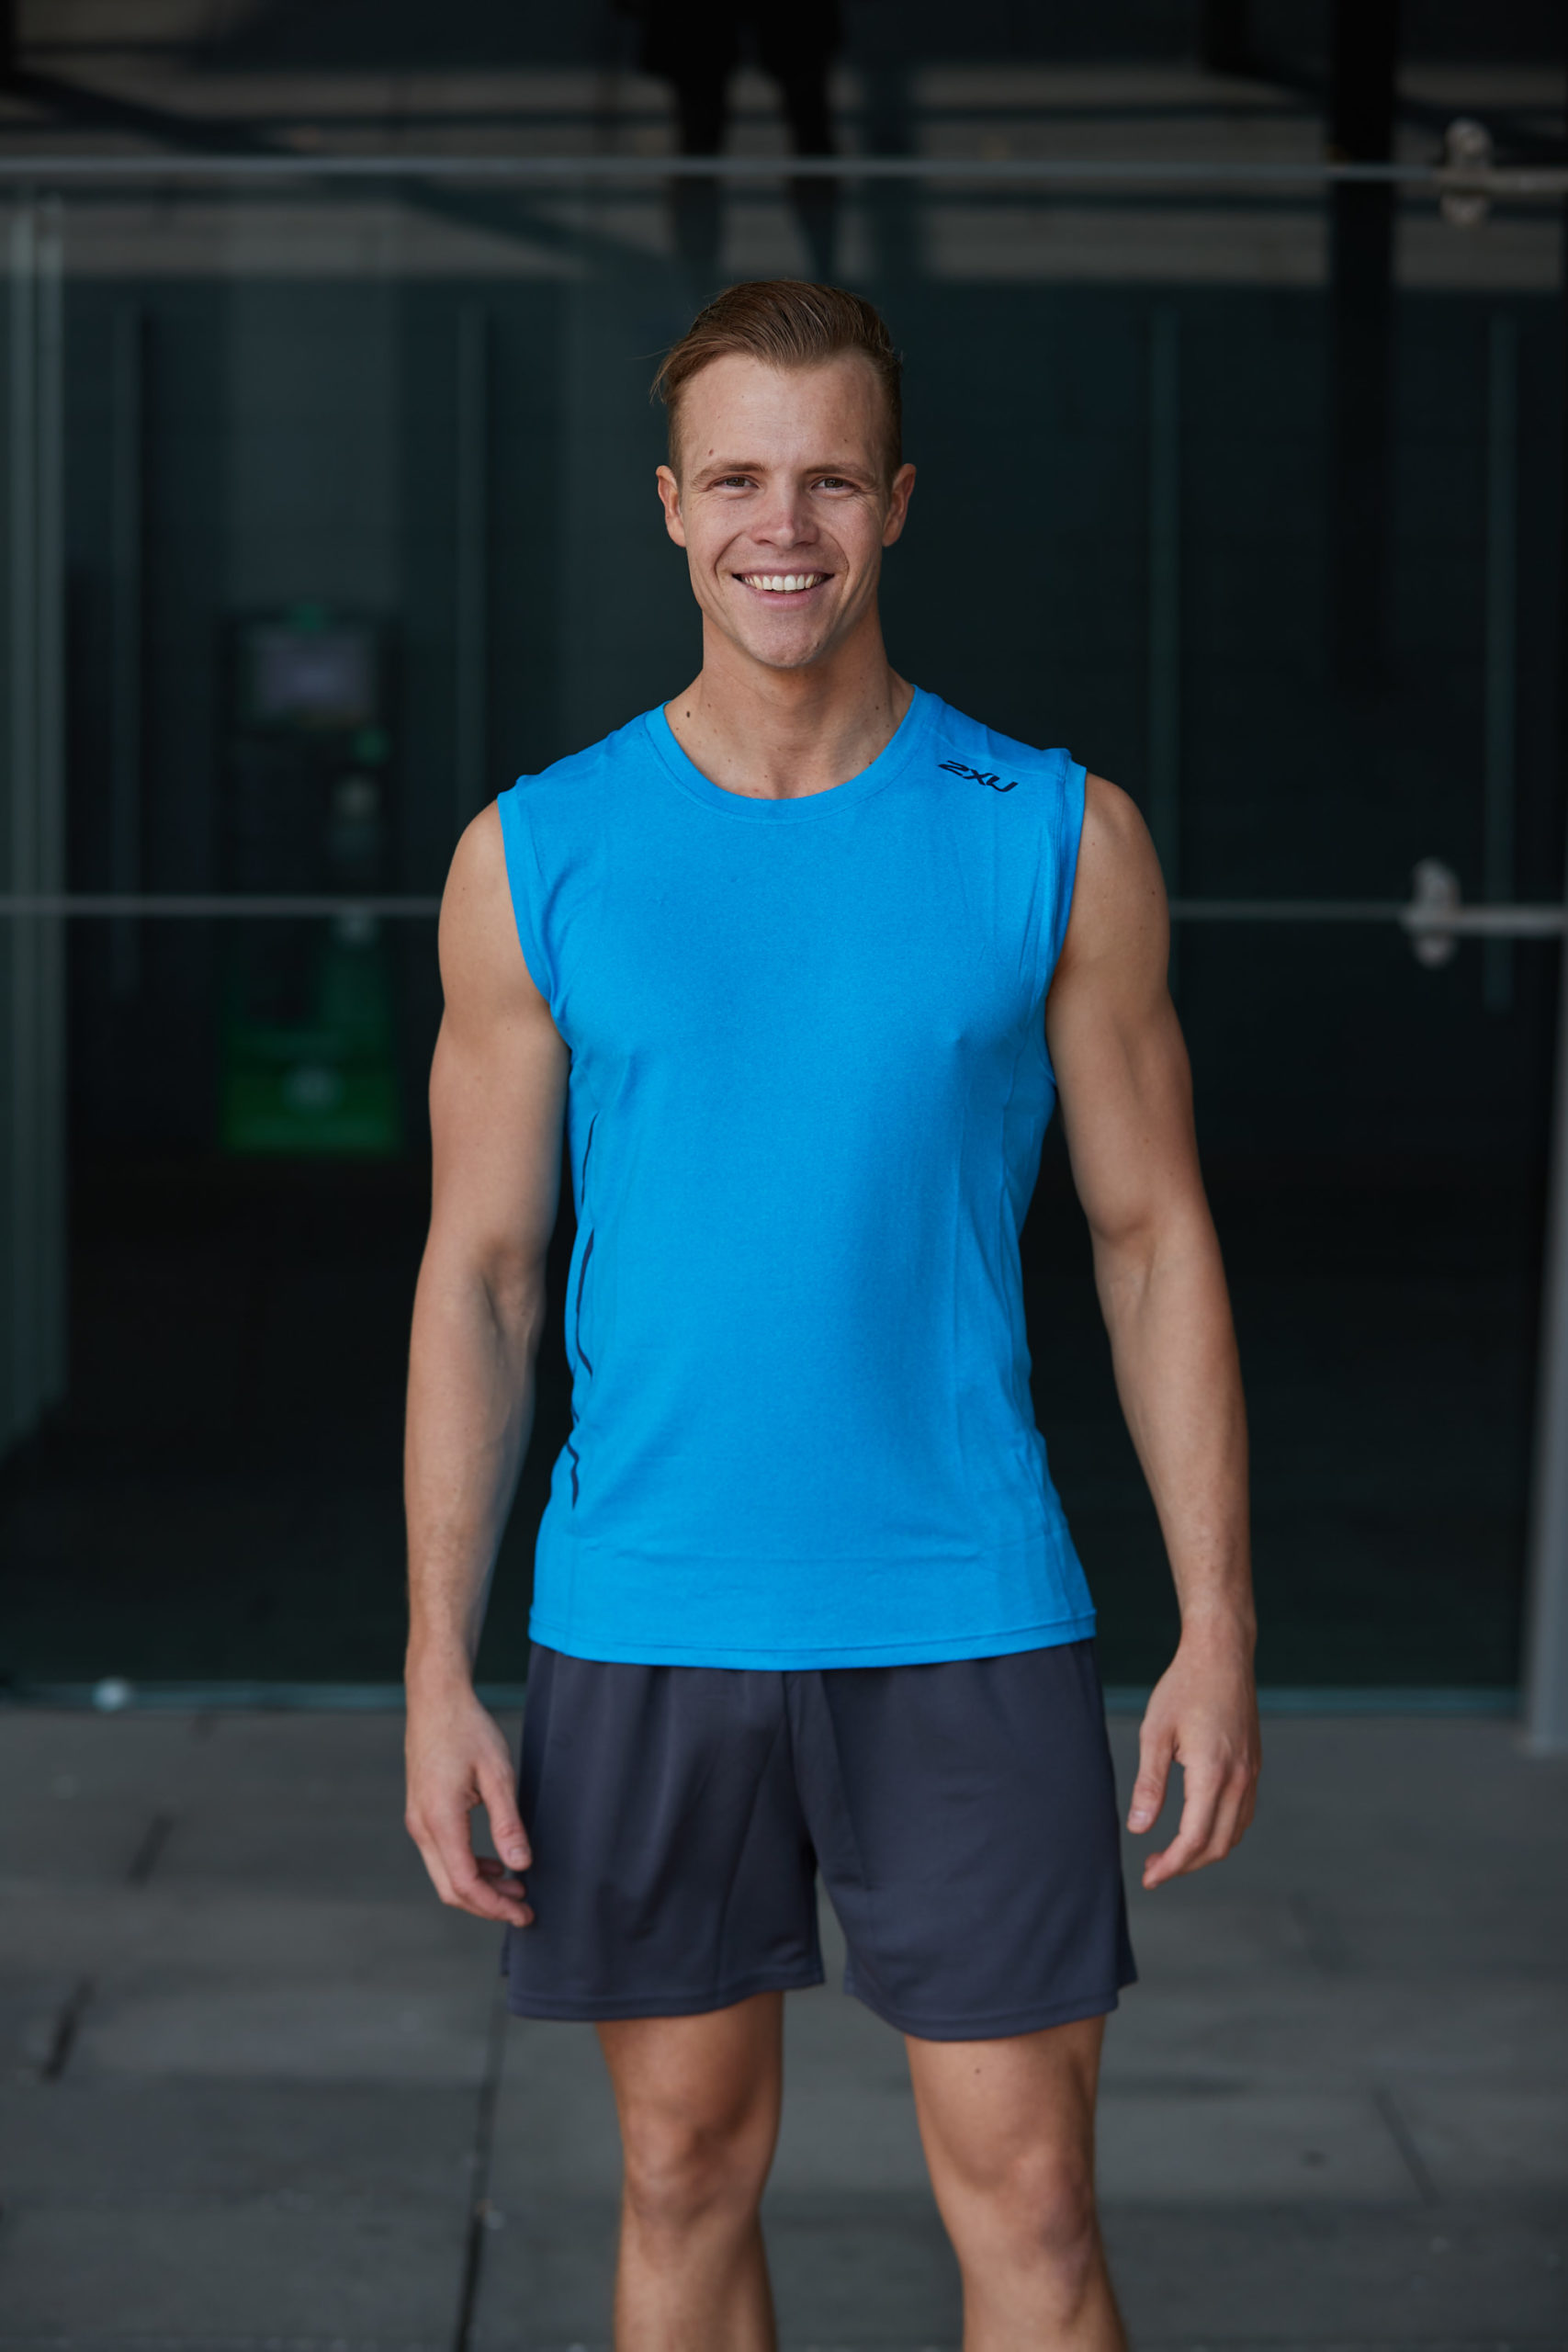 Sam smiling during his Melbourne fitness photo shoot